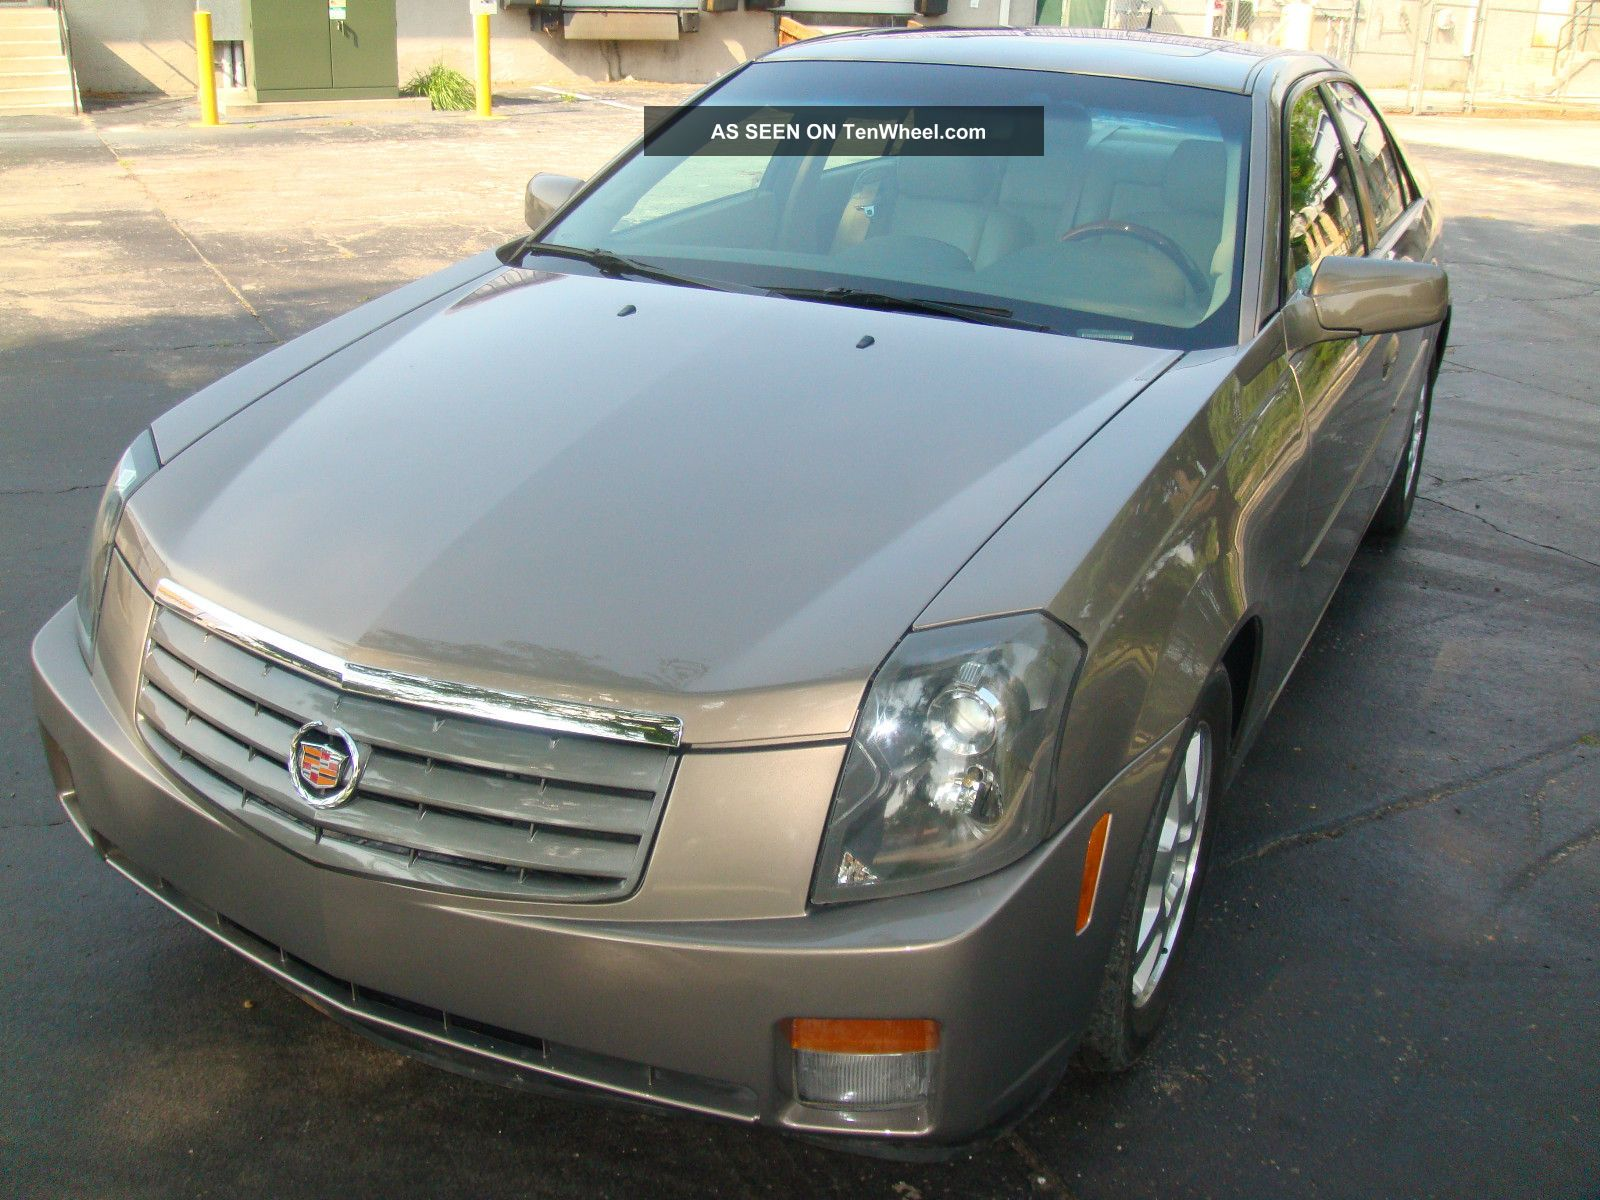 Cadillac Cts Base Sedan Door L Lgw on 2006 Cadillac Cts Side View